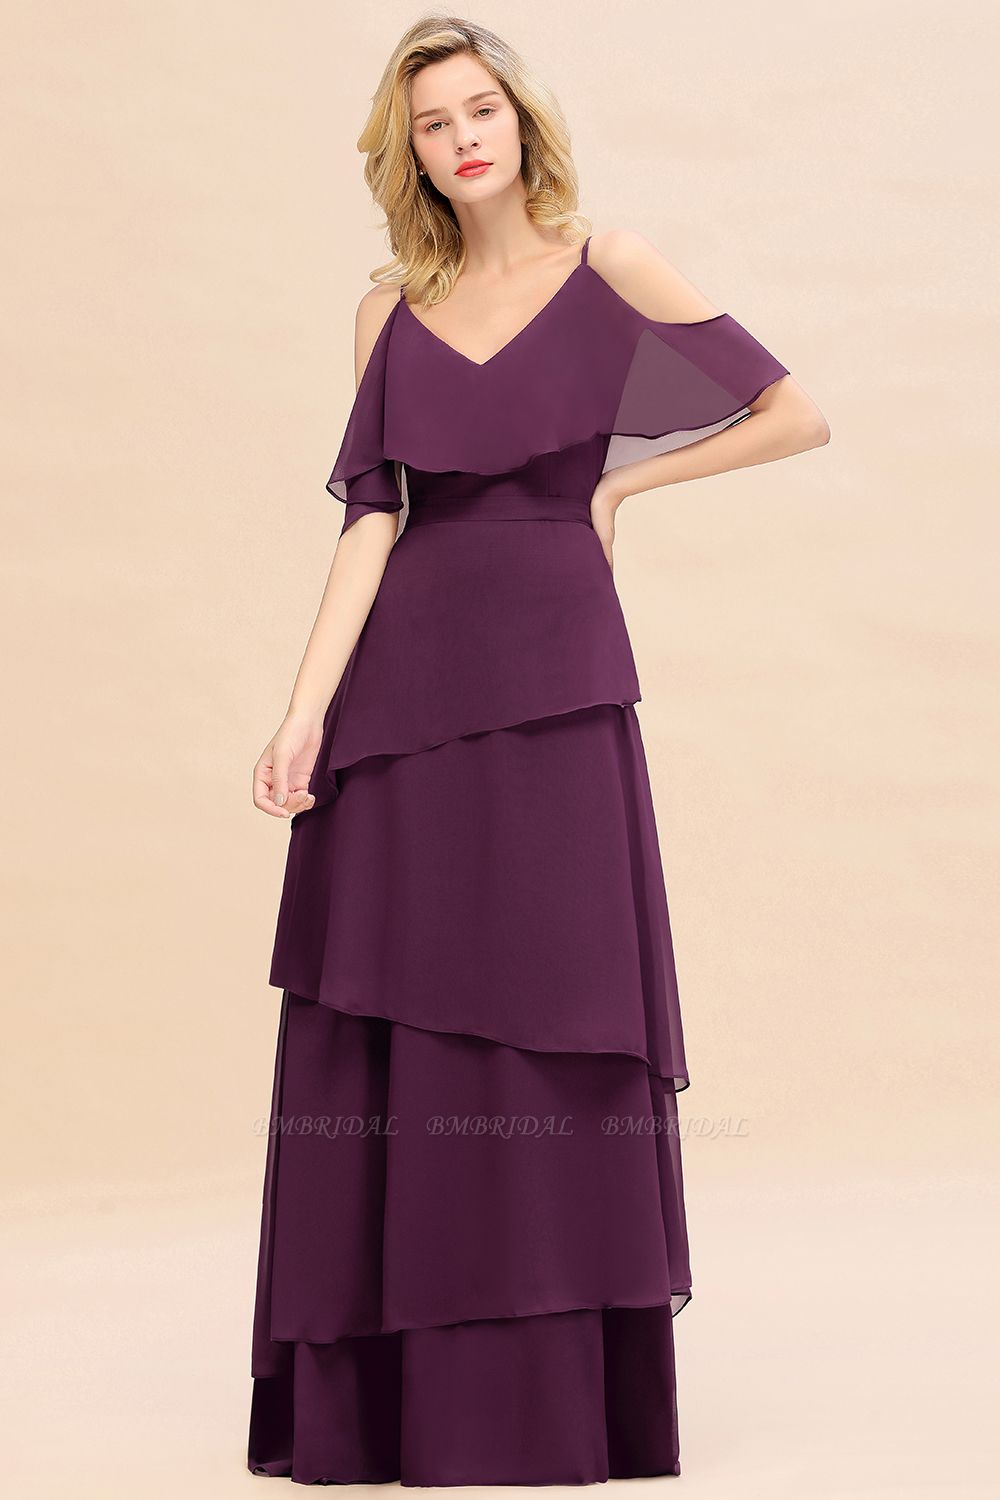 BMbridal Chic Cold-Shoulder Layers Grape Chiffon Bridesmaid Dress Affordable